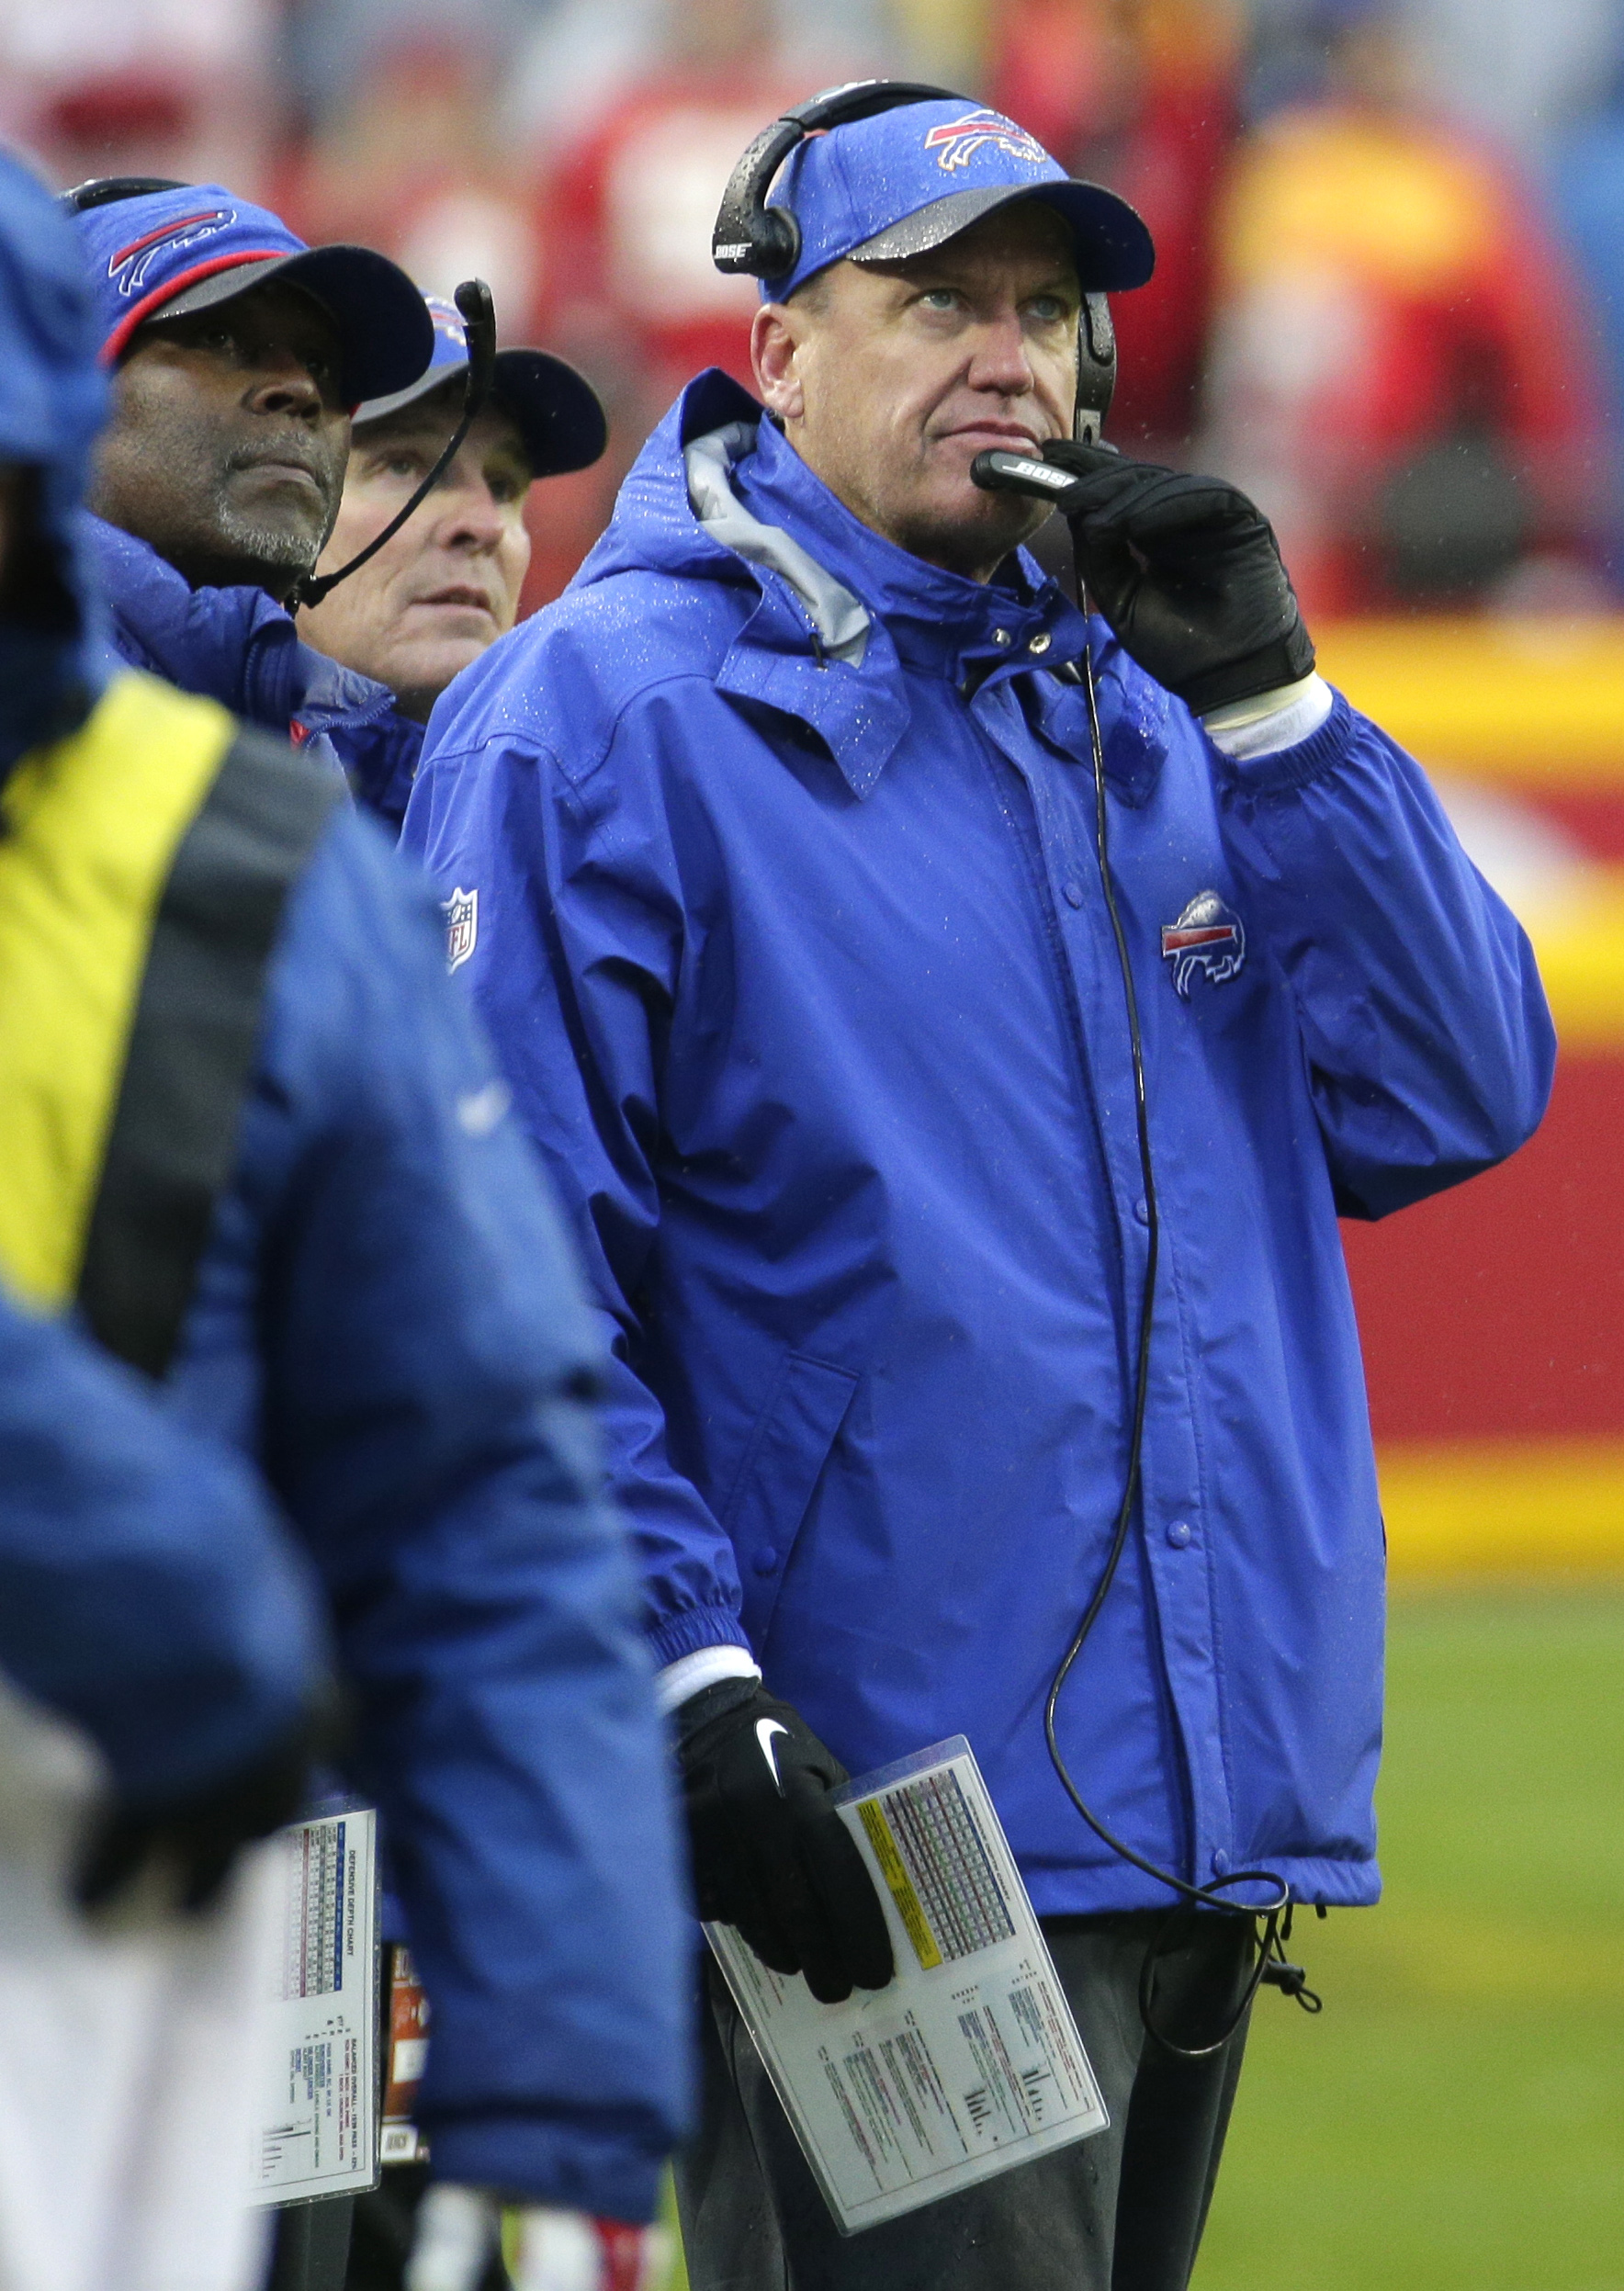 Buffalo Bills head coach Rex Ryan looks at the scoreboard during the second half of an NFL football game against the Kansas City Chiefs in Kansas City, Mo., Sunday, Nov. 29, 2015. (AP Photo/Charlie Riedel)